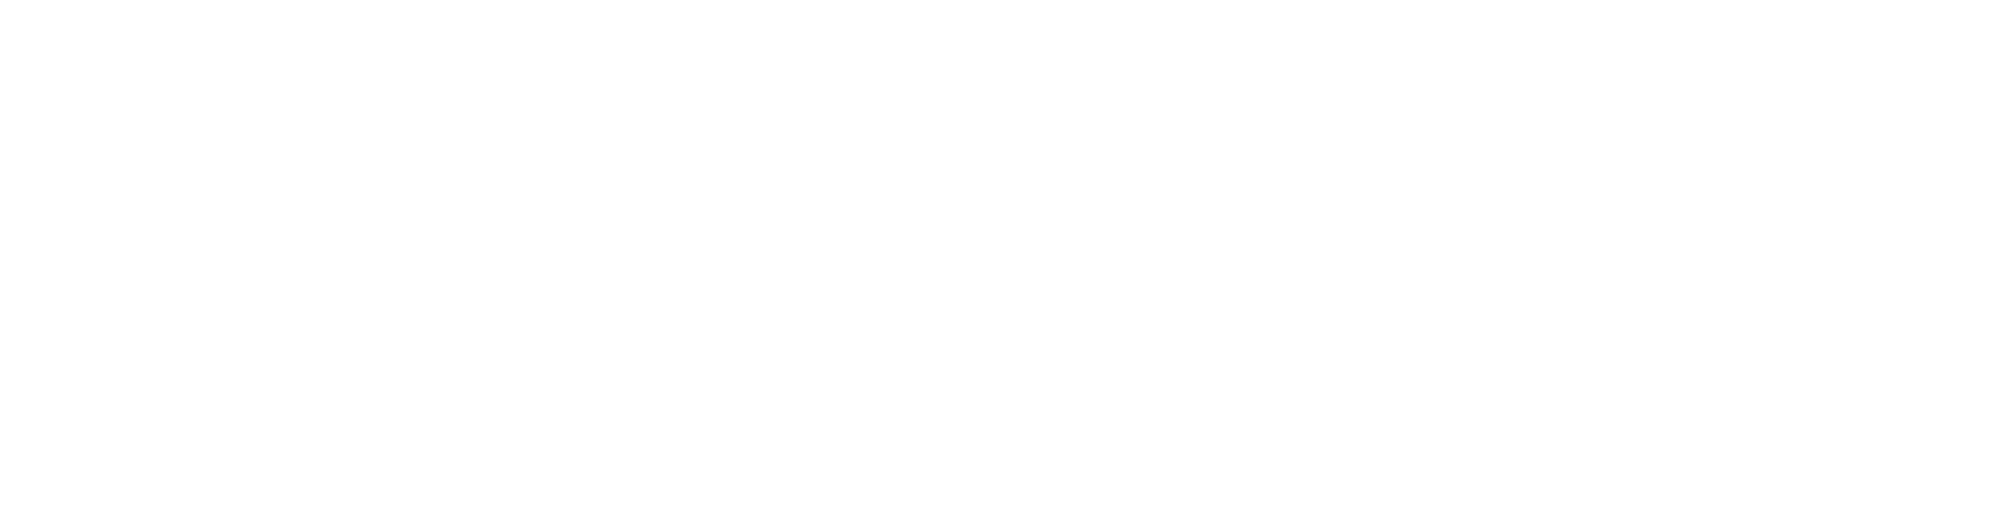 Spotted Pup Productions